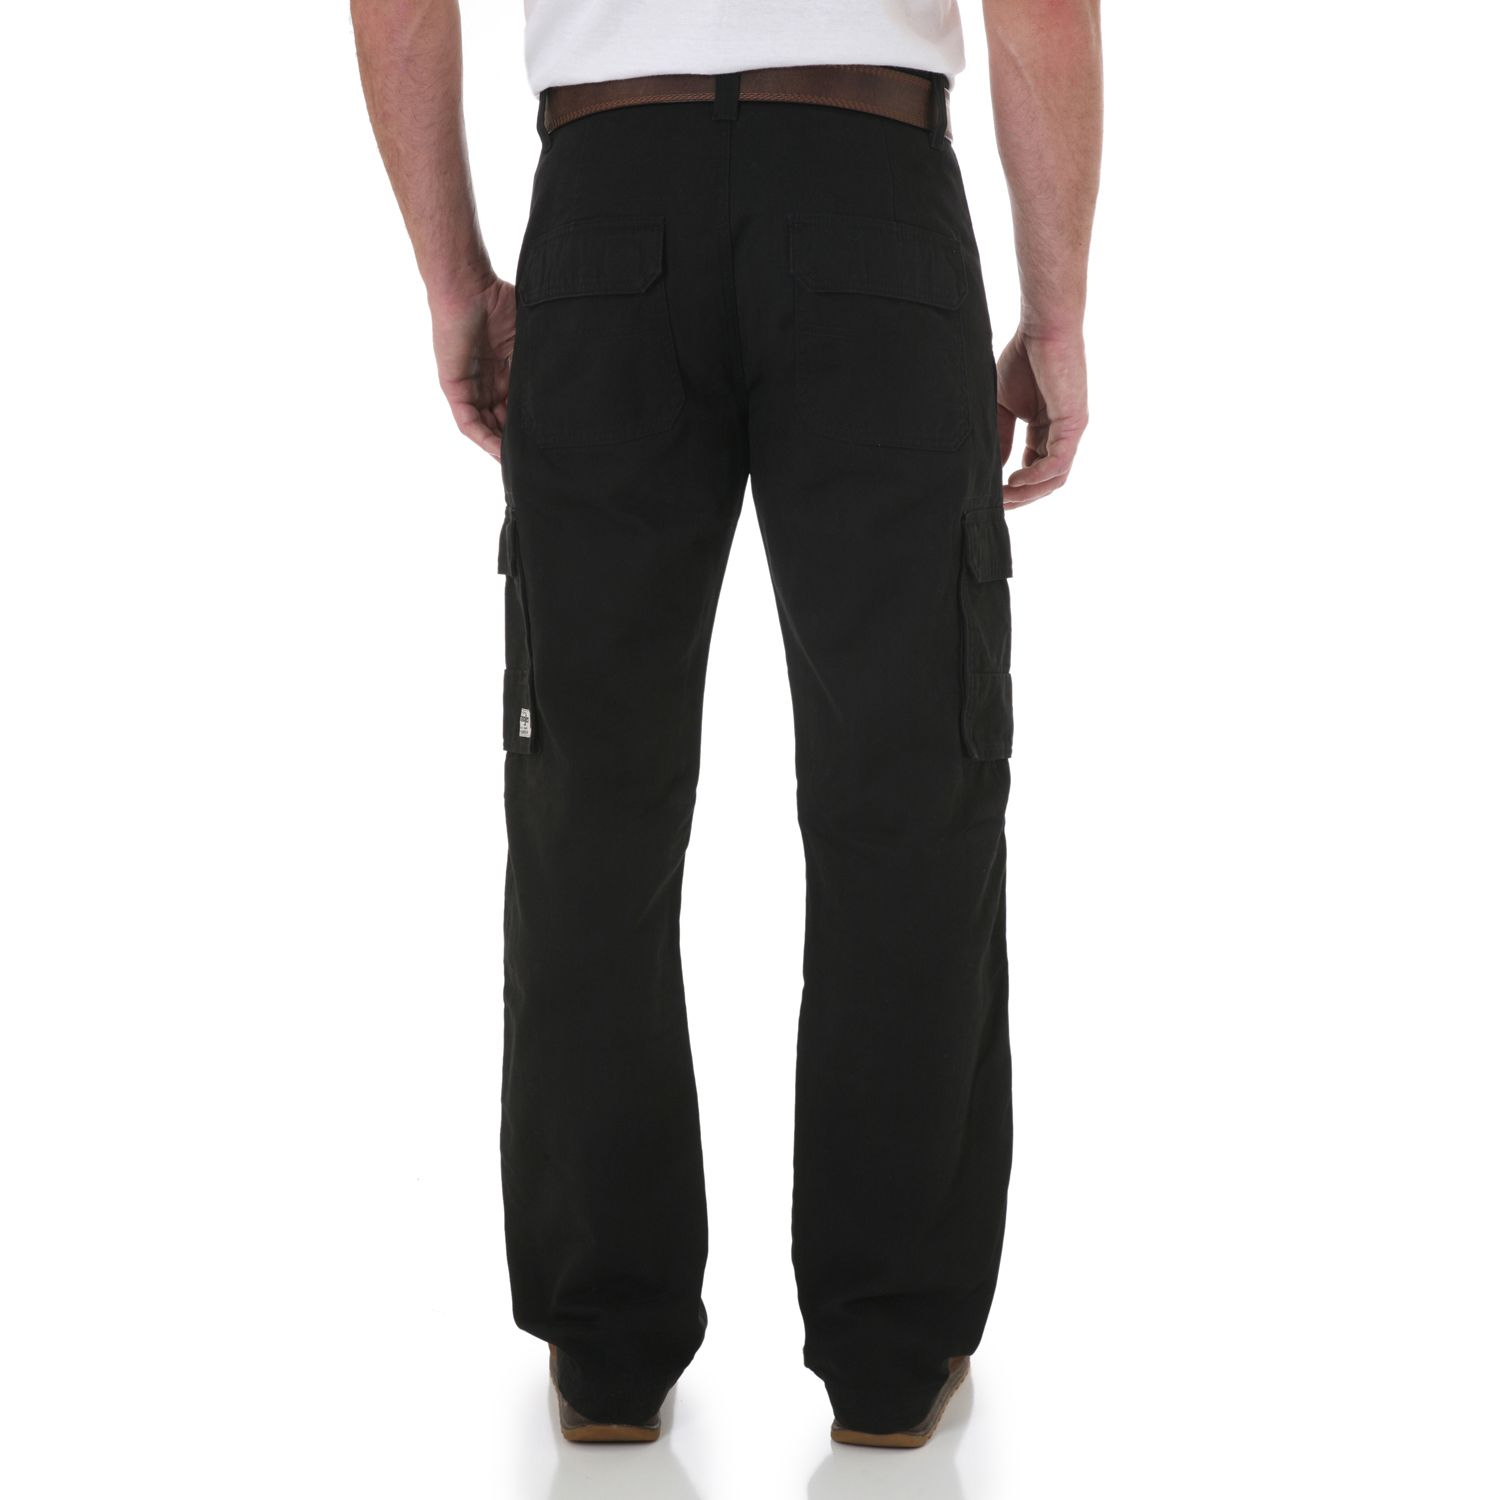 New Wrangler Cargo Jeans Dark Stone Big and Tall Sizes Free Shipping